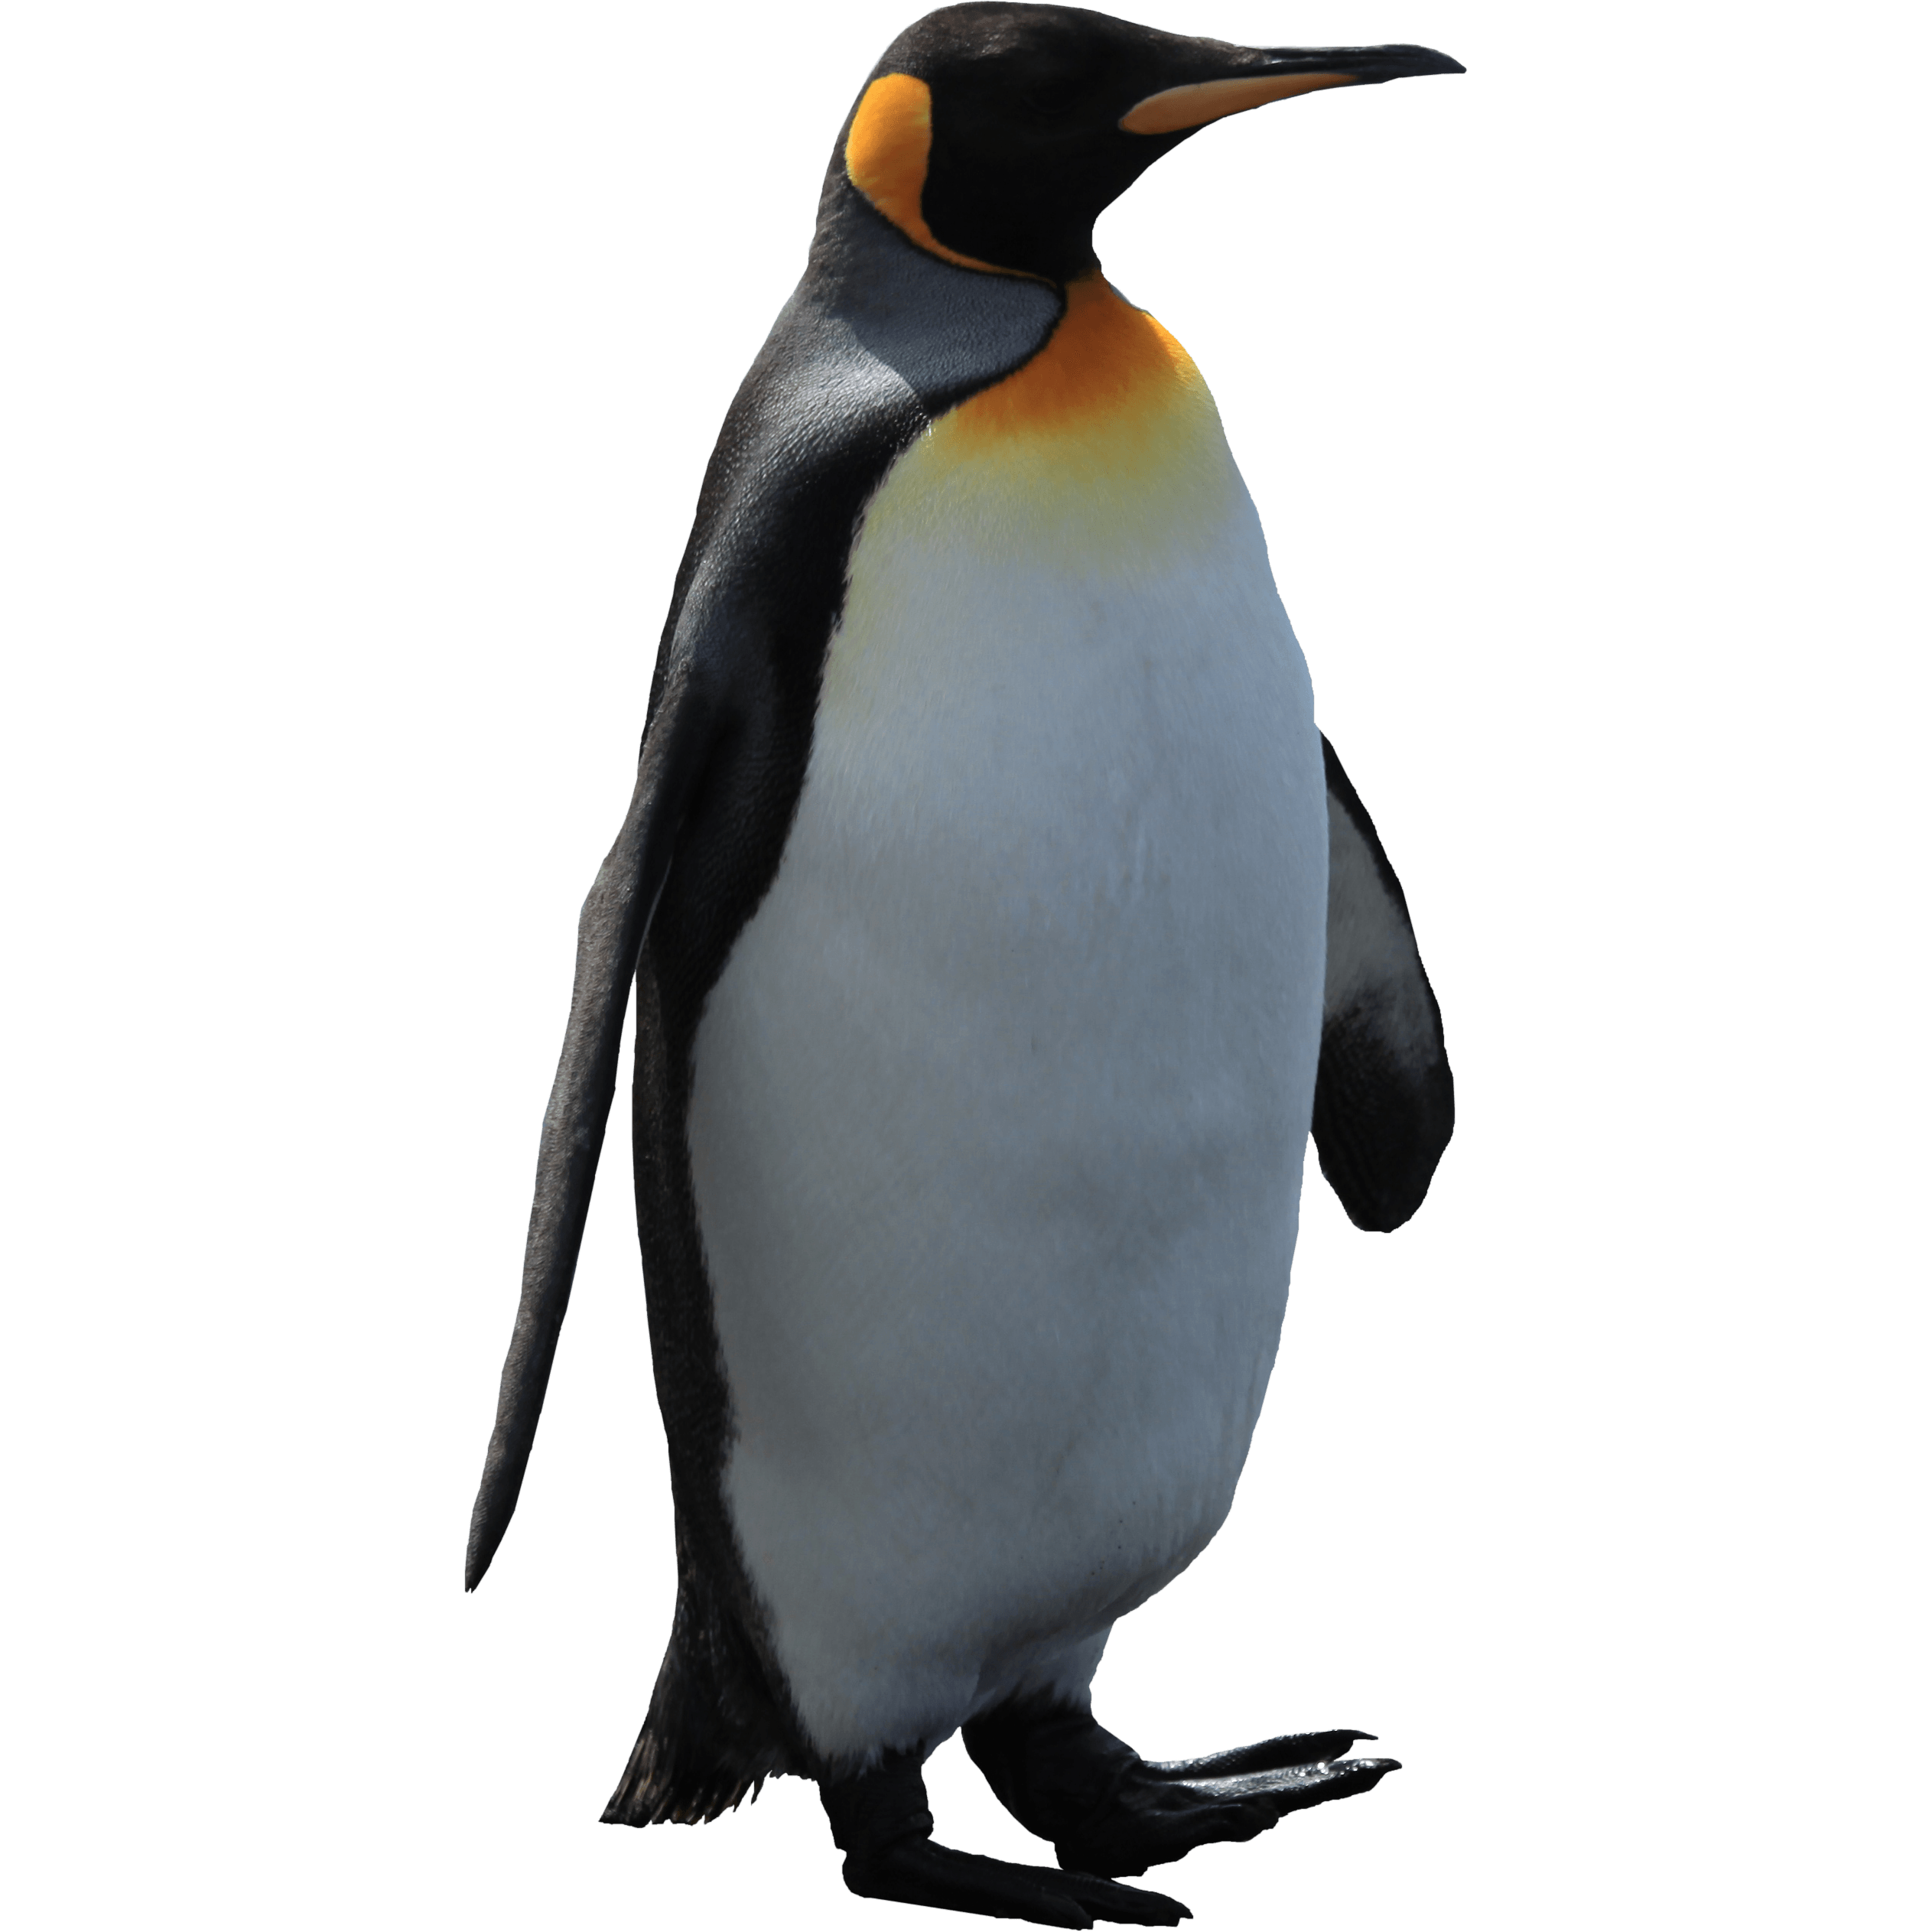 penguin sex personals Penguin's best 100% free gay dating site want to meet single gay men in penguin, tasmania mingle2's gay penguin personals are the free and easy way to find other penguin gay singles looking for dates, boyfriends, sex, or friends.